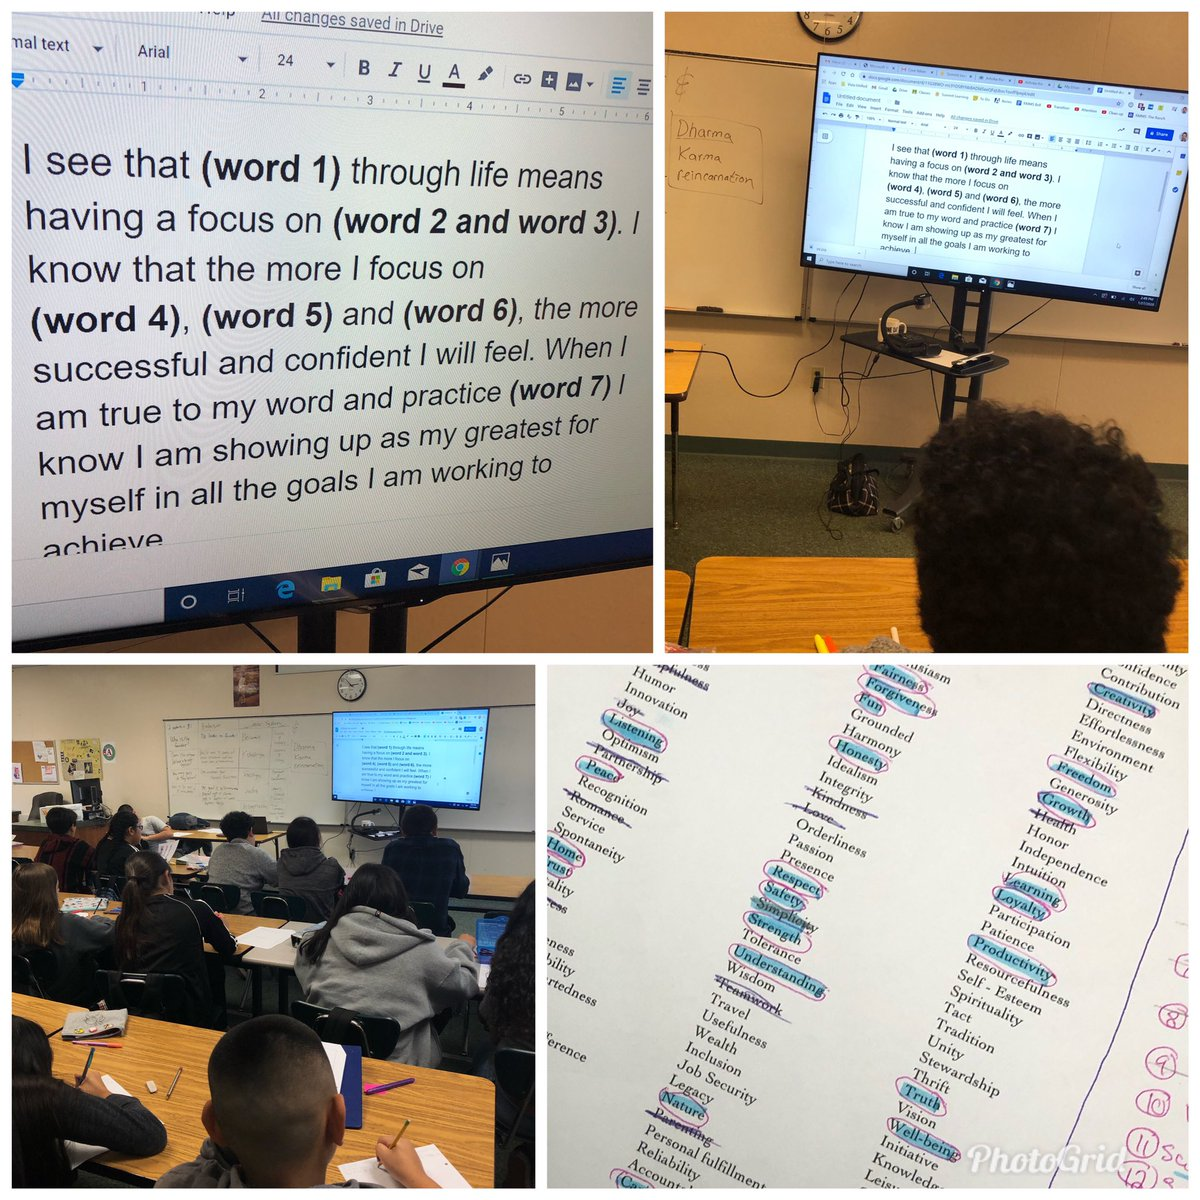 6th grade scholars learning about dharma writing their own personal life purpose statements. #ancientindia #applicablelearning @RMMSbullspic.twitter.com/RwgMcFUPIt